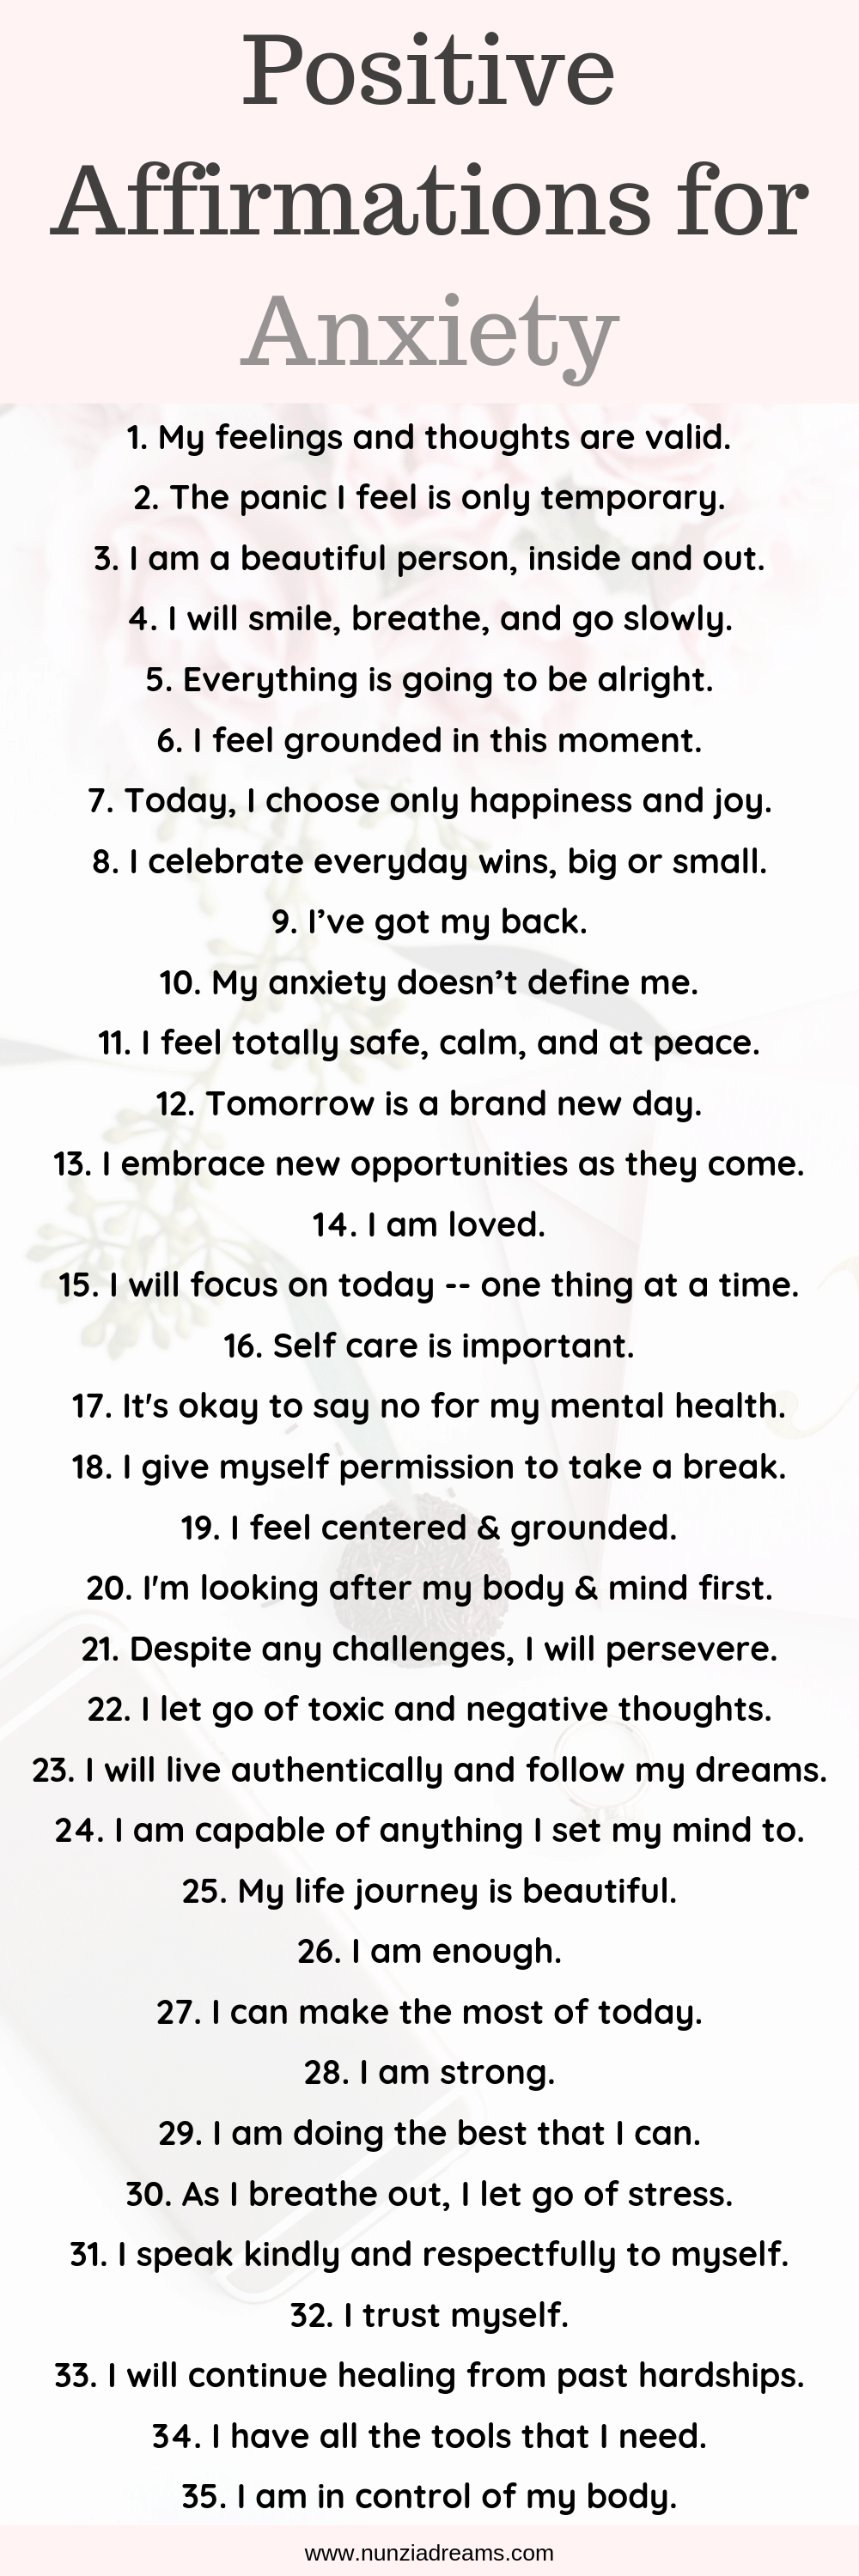 Printable -- Positive Affirmations for Anxiety